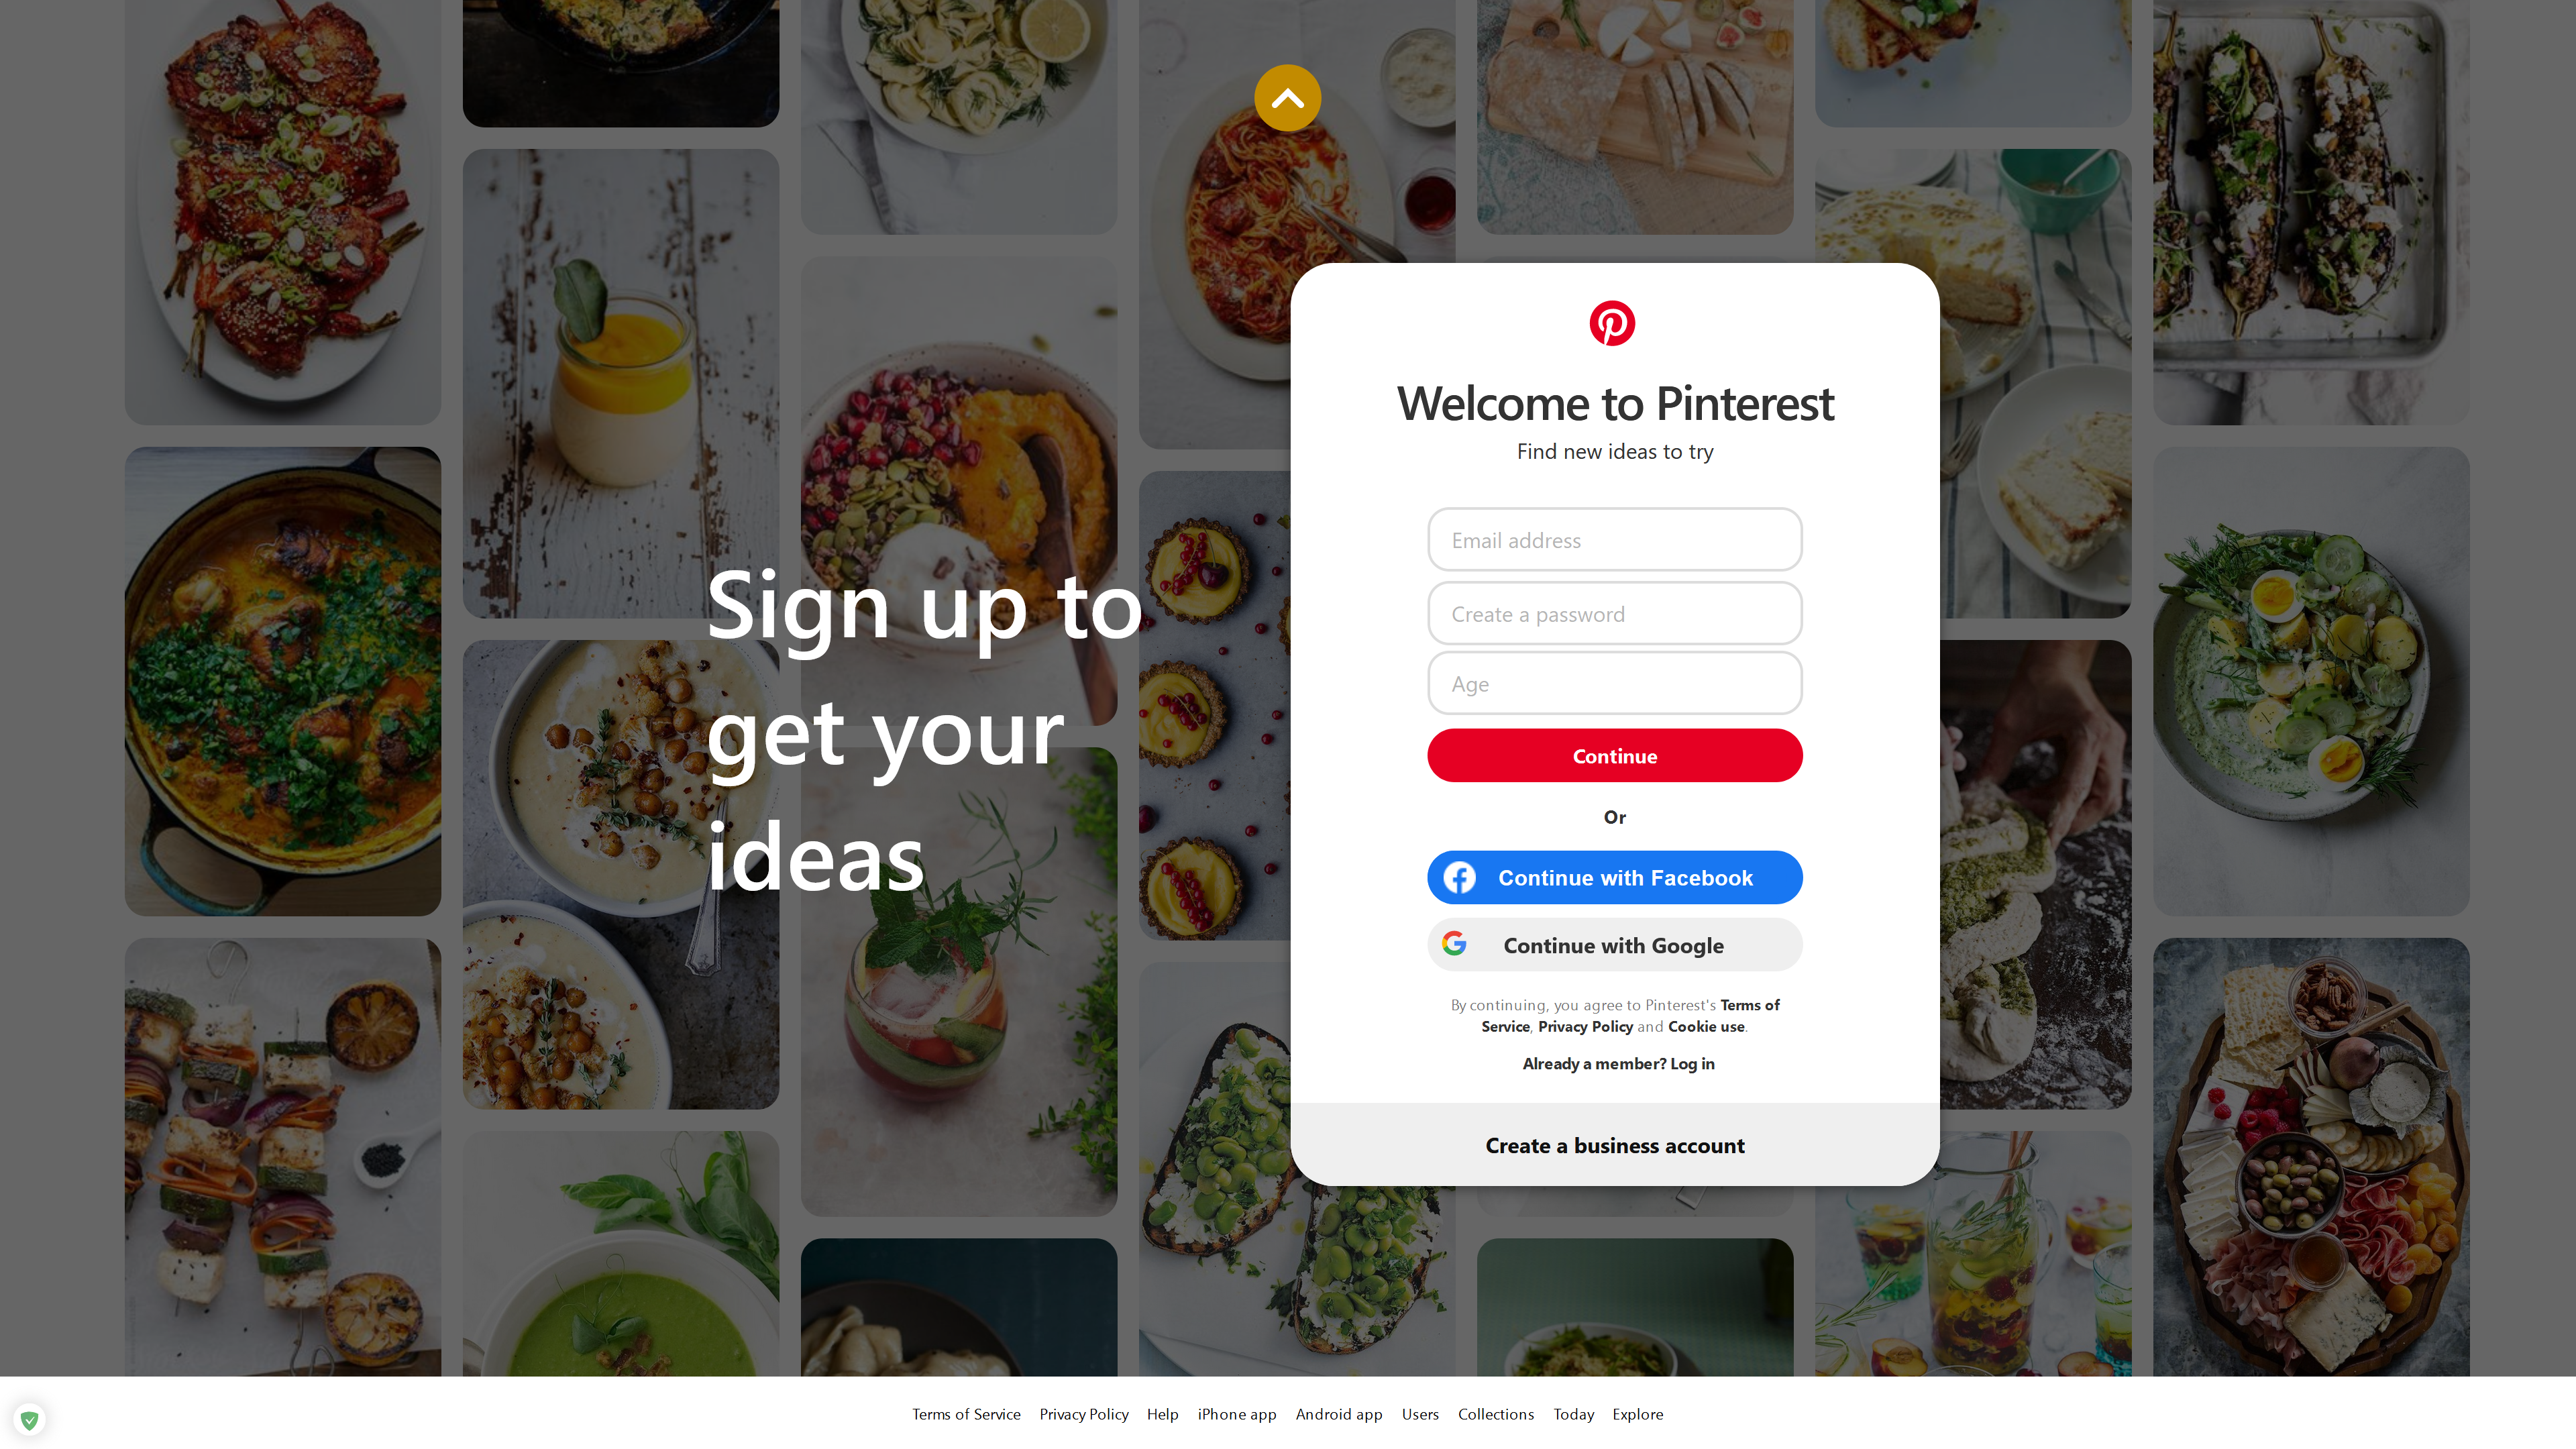 Sign up to get your ideas screenshot